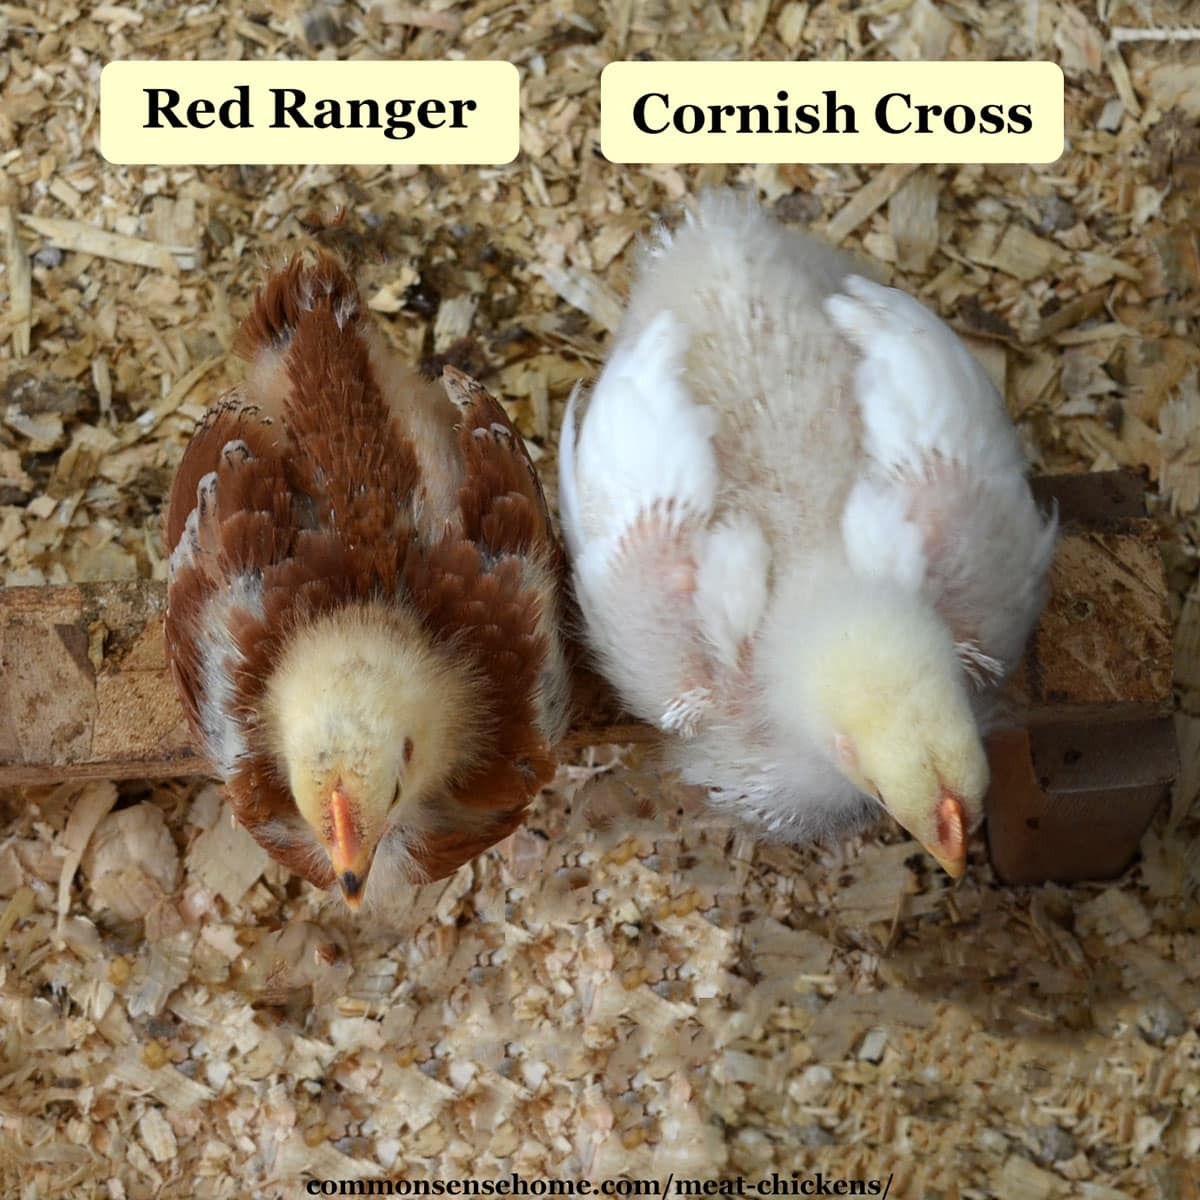 comparison of red ranger and cornish cross chicks